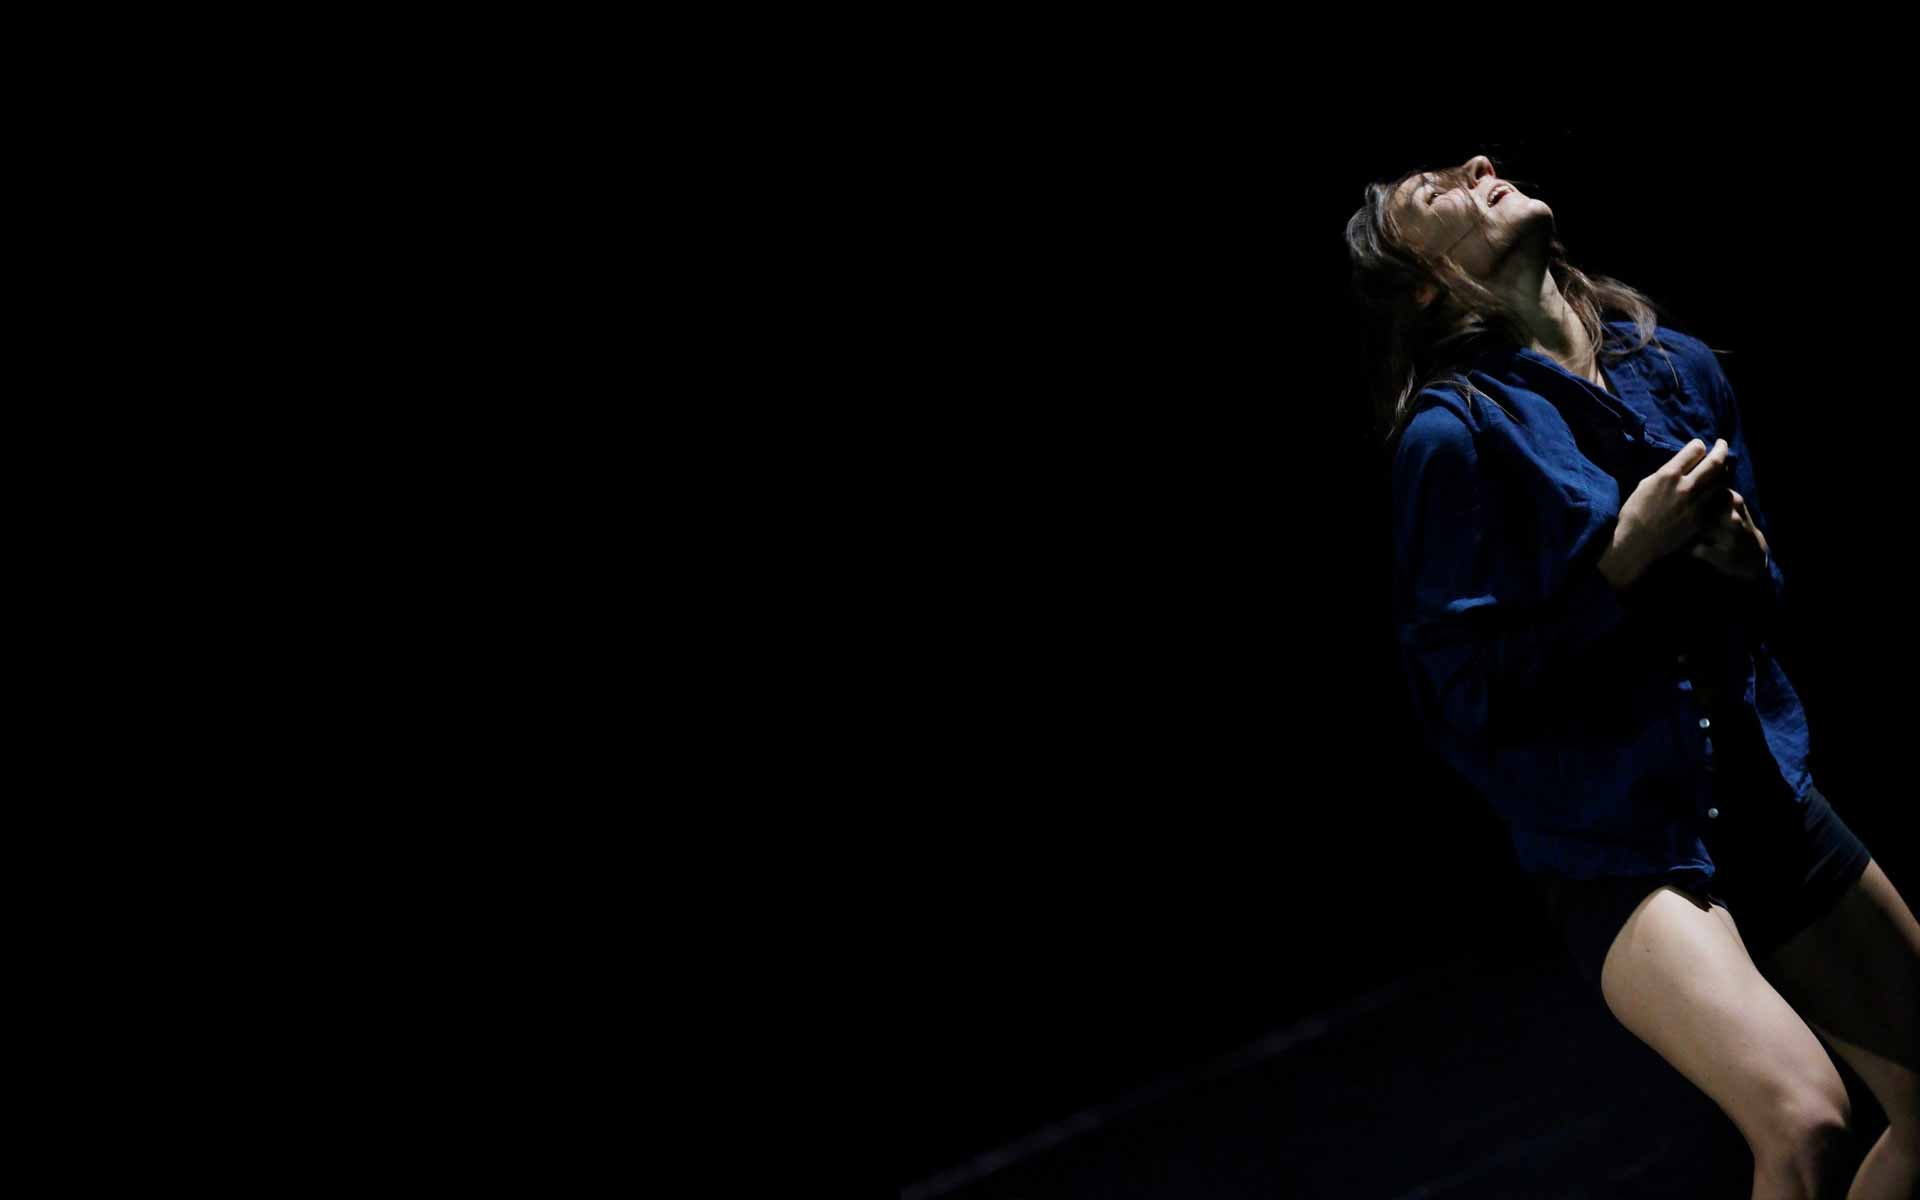 Dancer Anna Kempin buttoning her shirt during her InBetWeEn A Shock dance performance at Center for Contemporary Dance